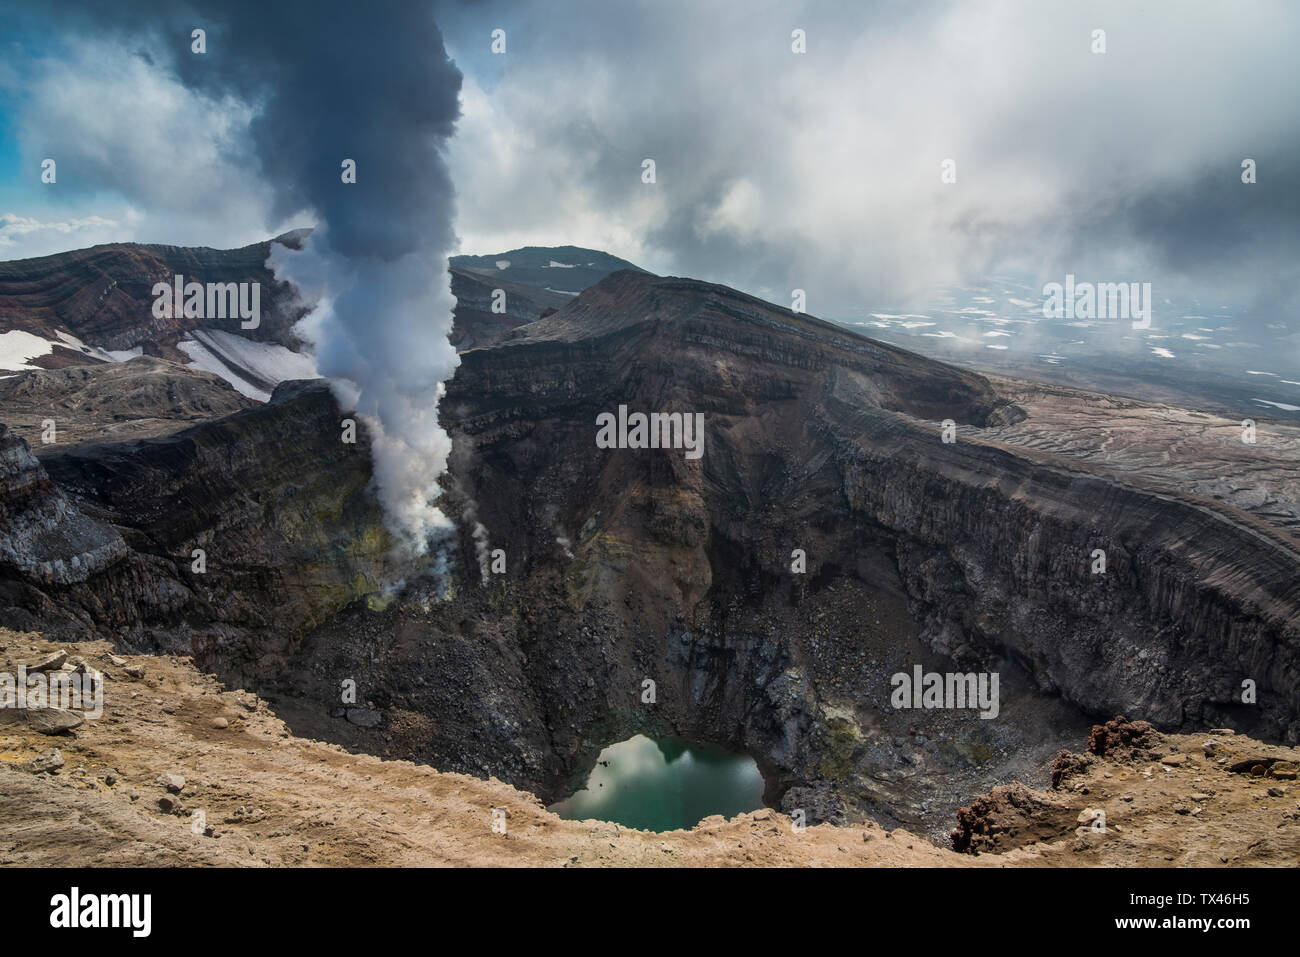 Russia, Kamchatka, steaming fumarole on the Gorely volcano - Stock Image